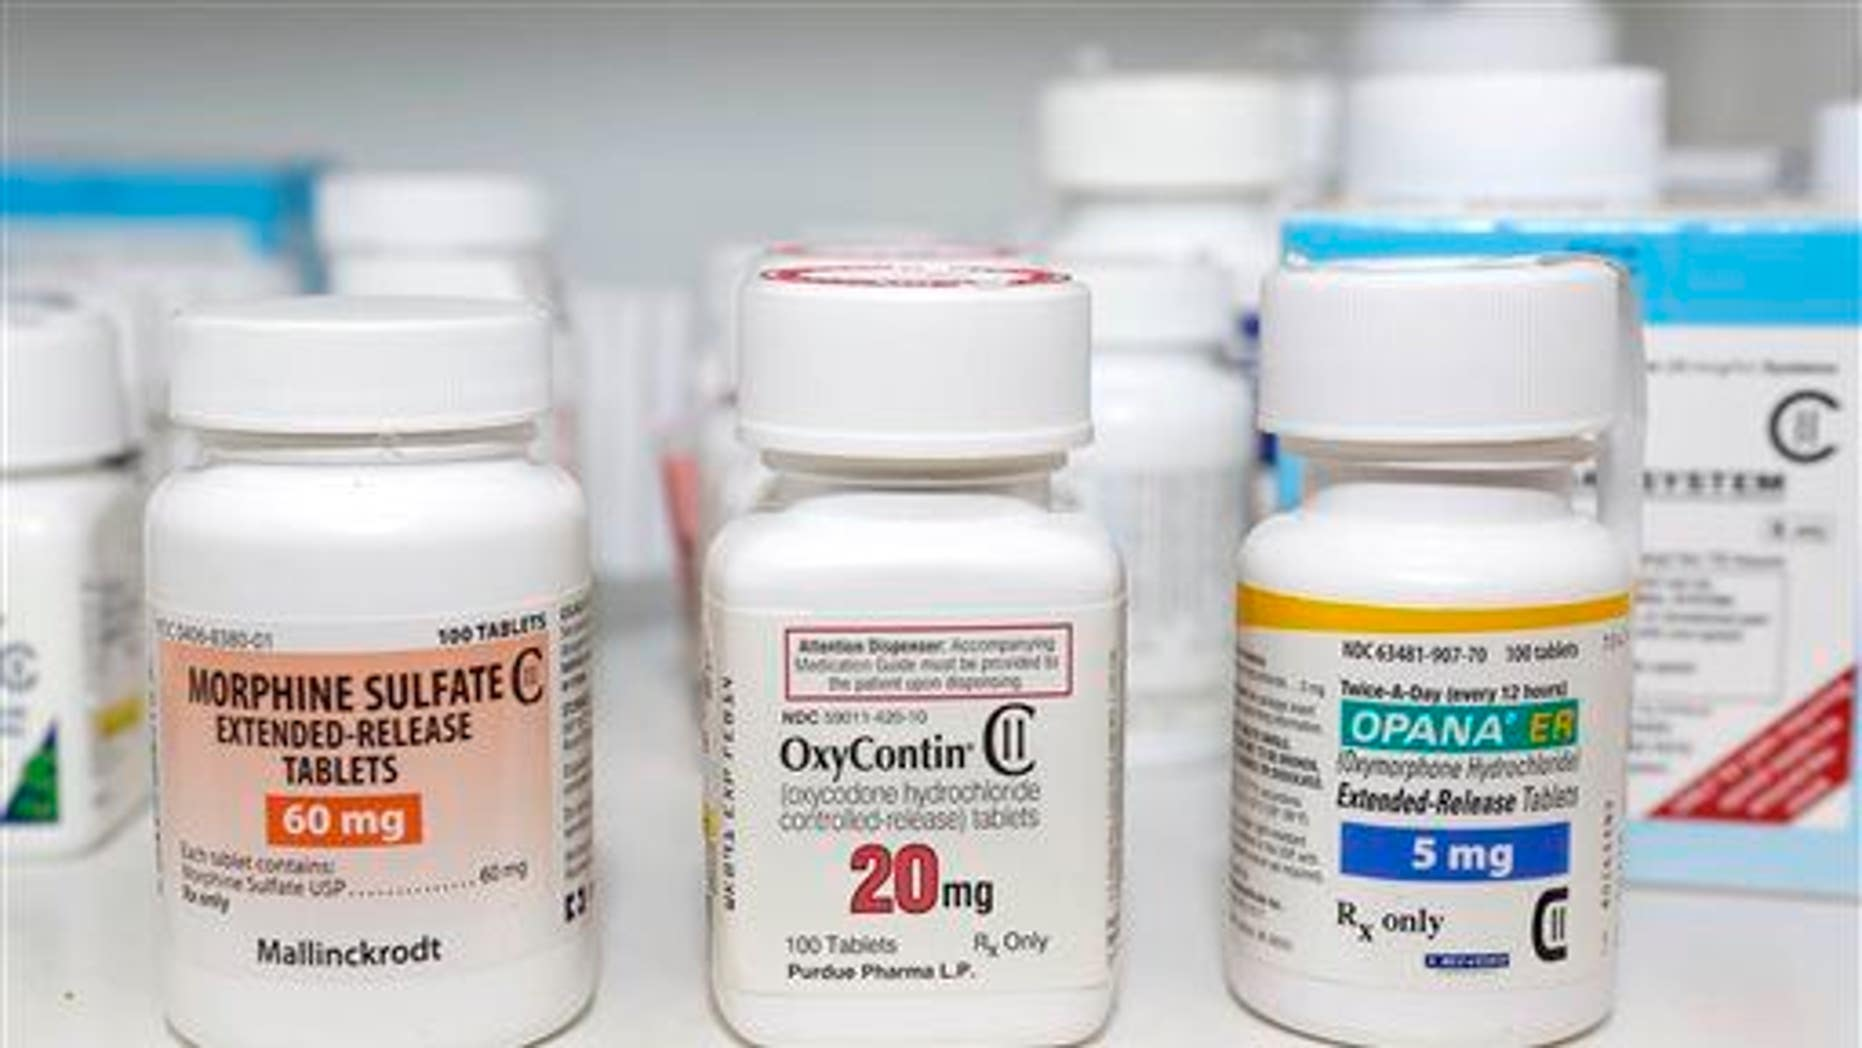 In this Jan. 18, 2013 file photo, Schedule 2 narcotics: Morphine Sulfate, OxyContin and Opana are displayed for a photograph in Carmichael, Calif.